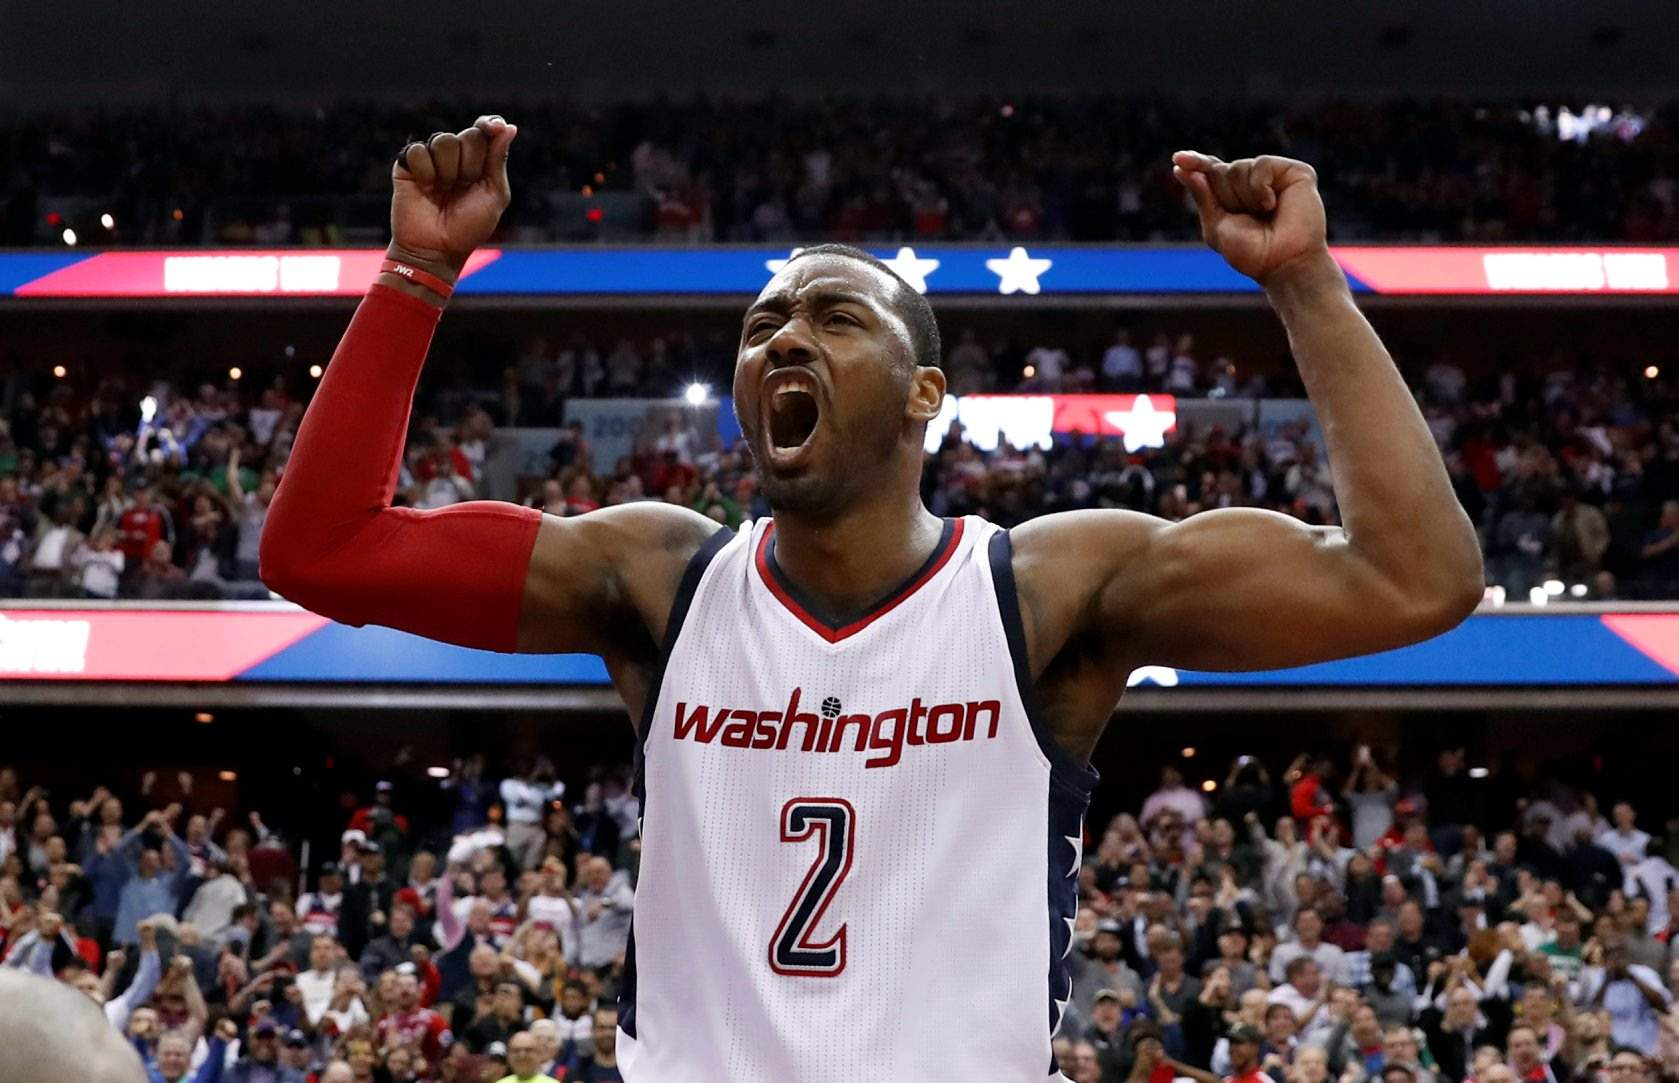 Durango Colorado AP Sources: John Wall, Wiz agree to $170M, 4-year extension News 60x60 image